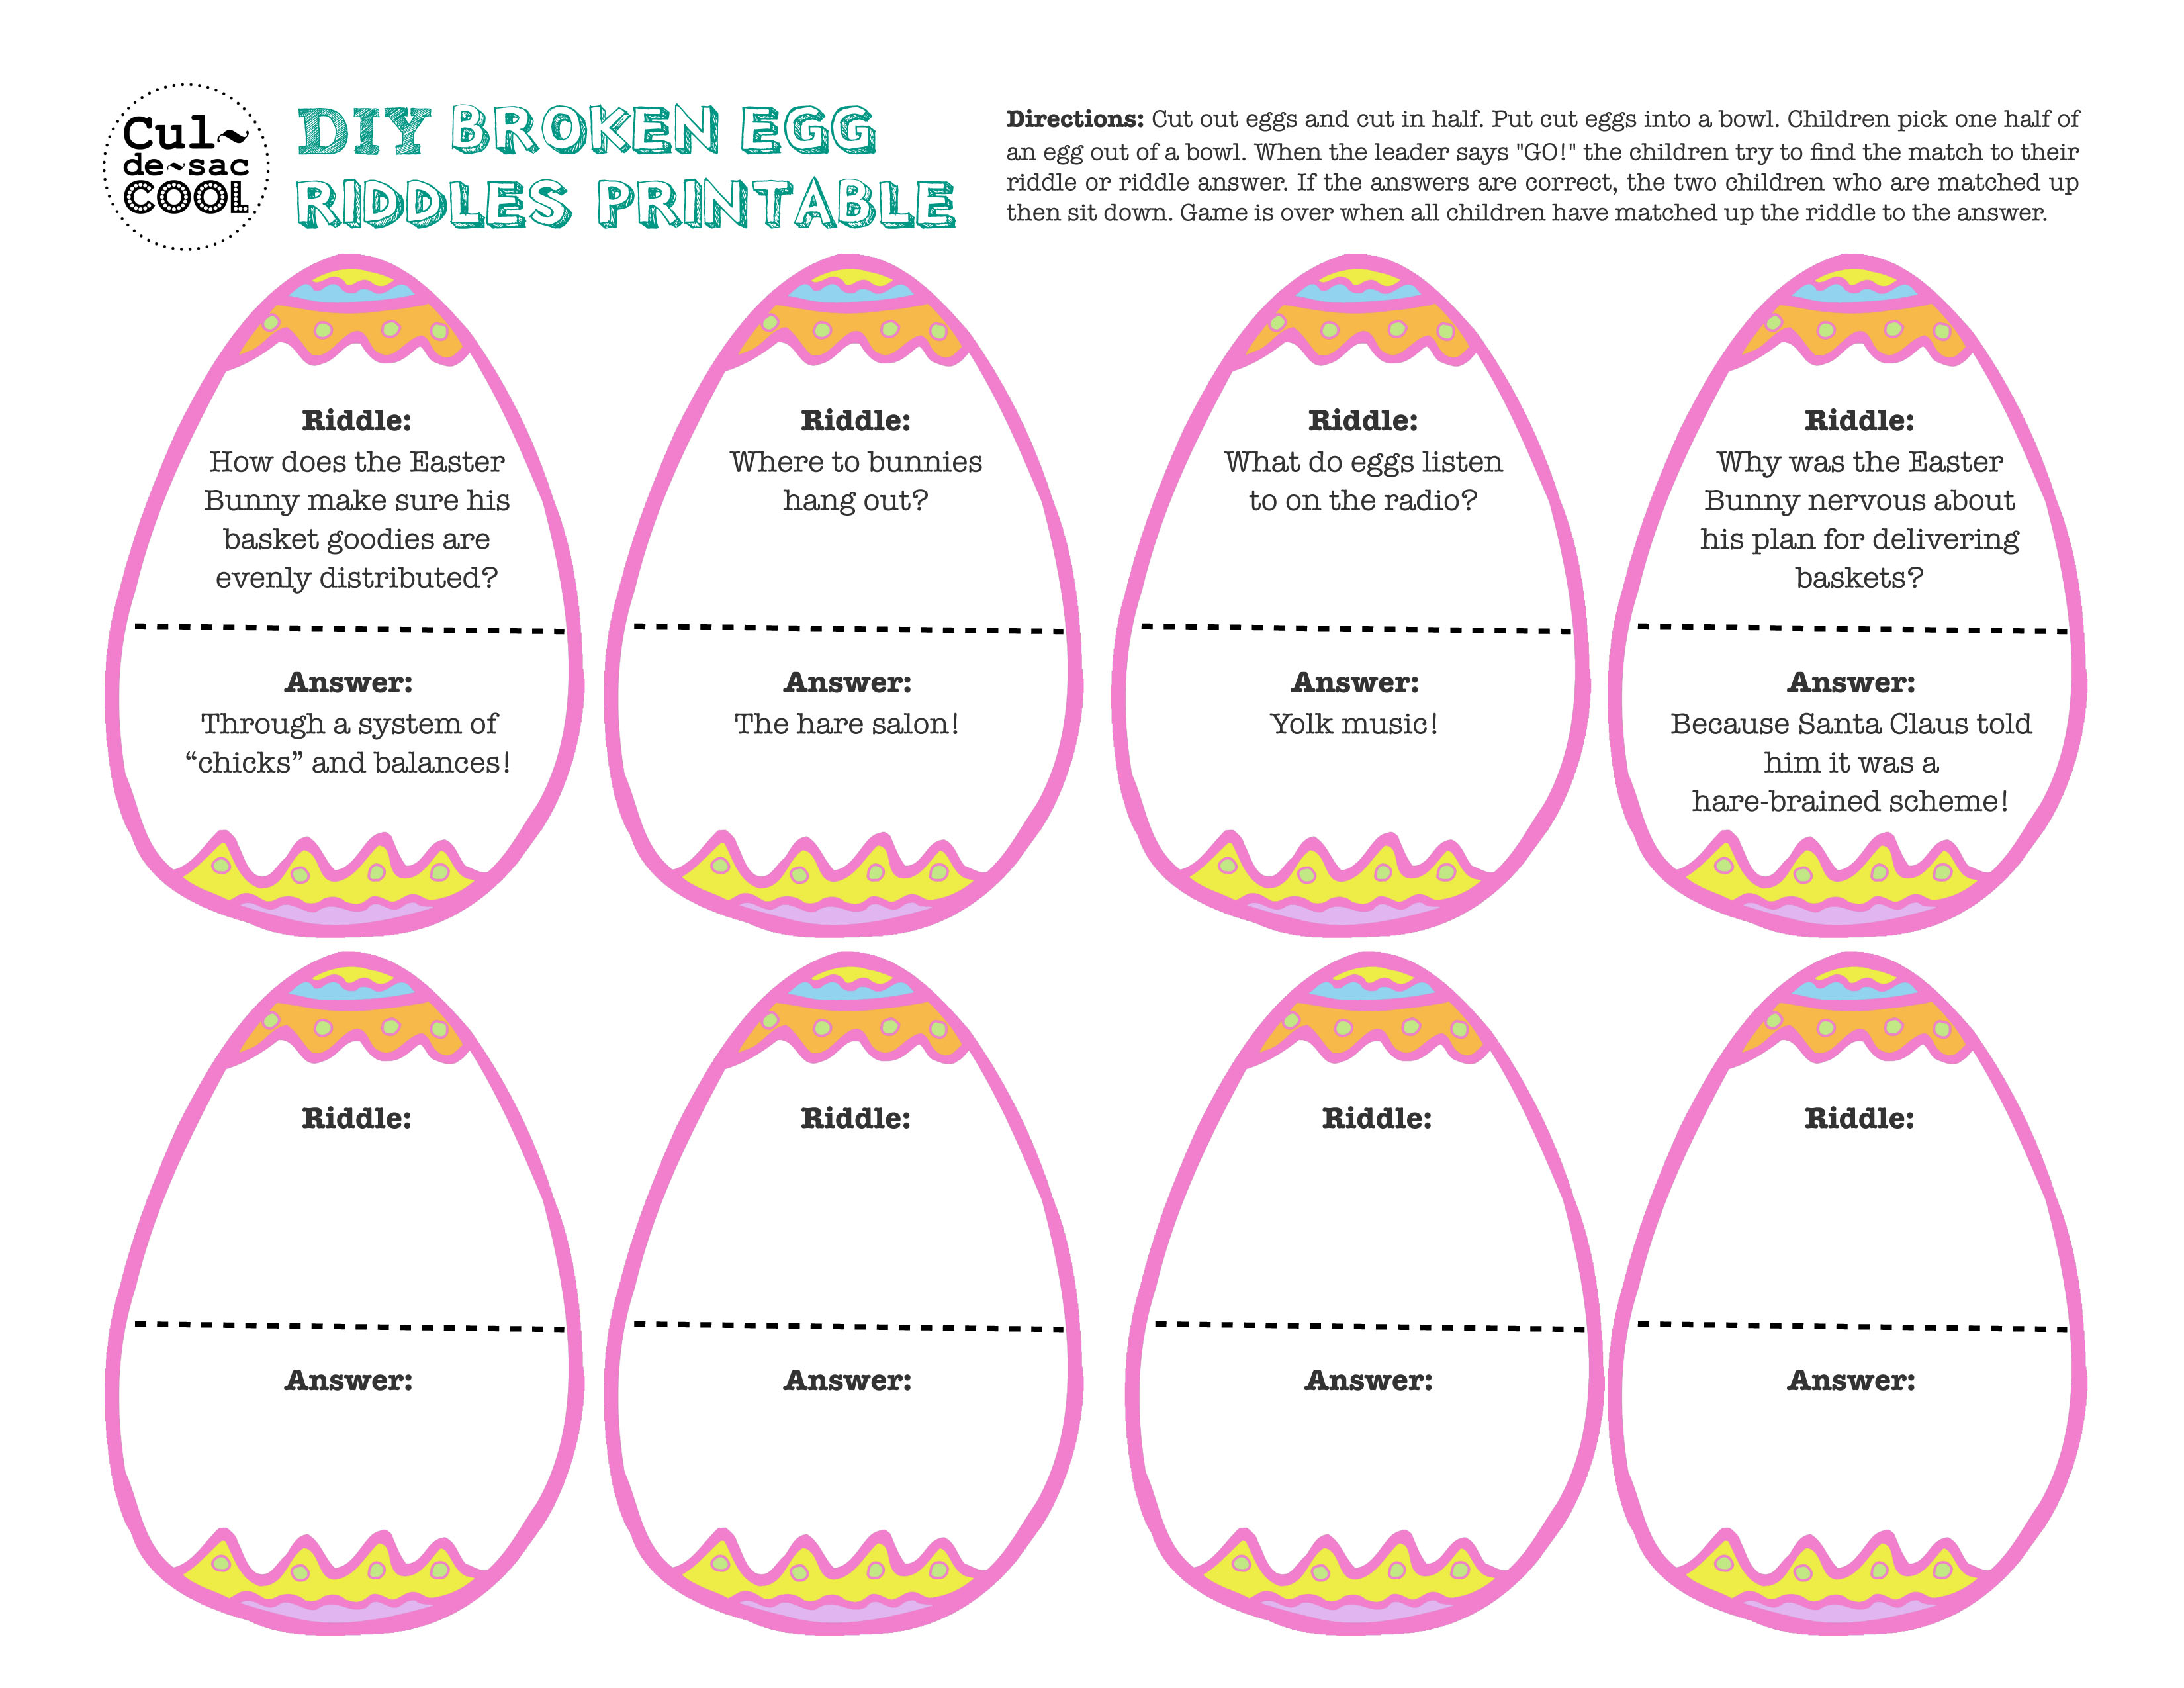 12 Coolest Kid Easter Party Games